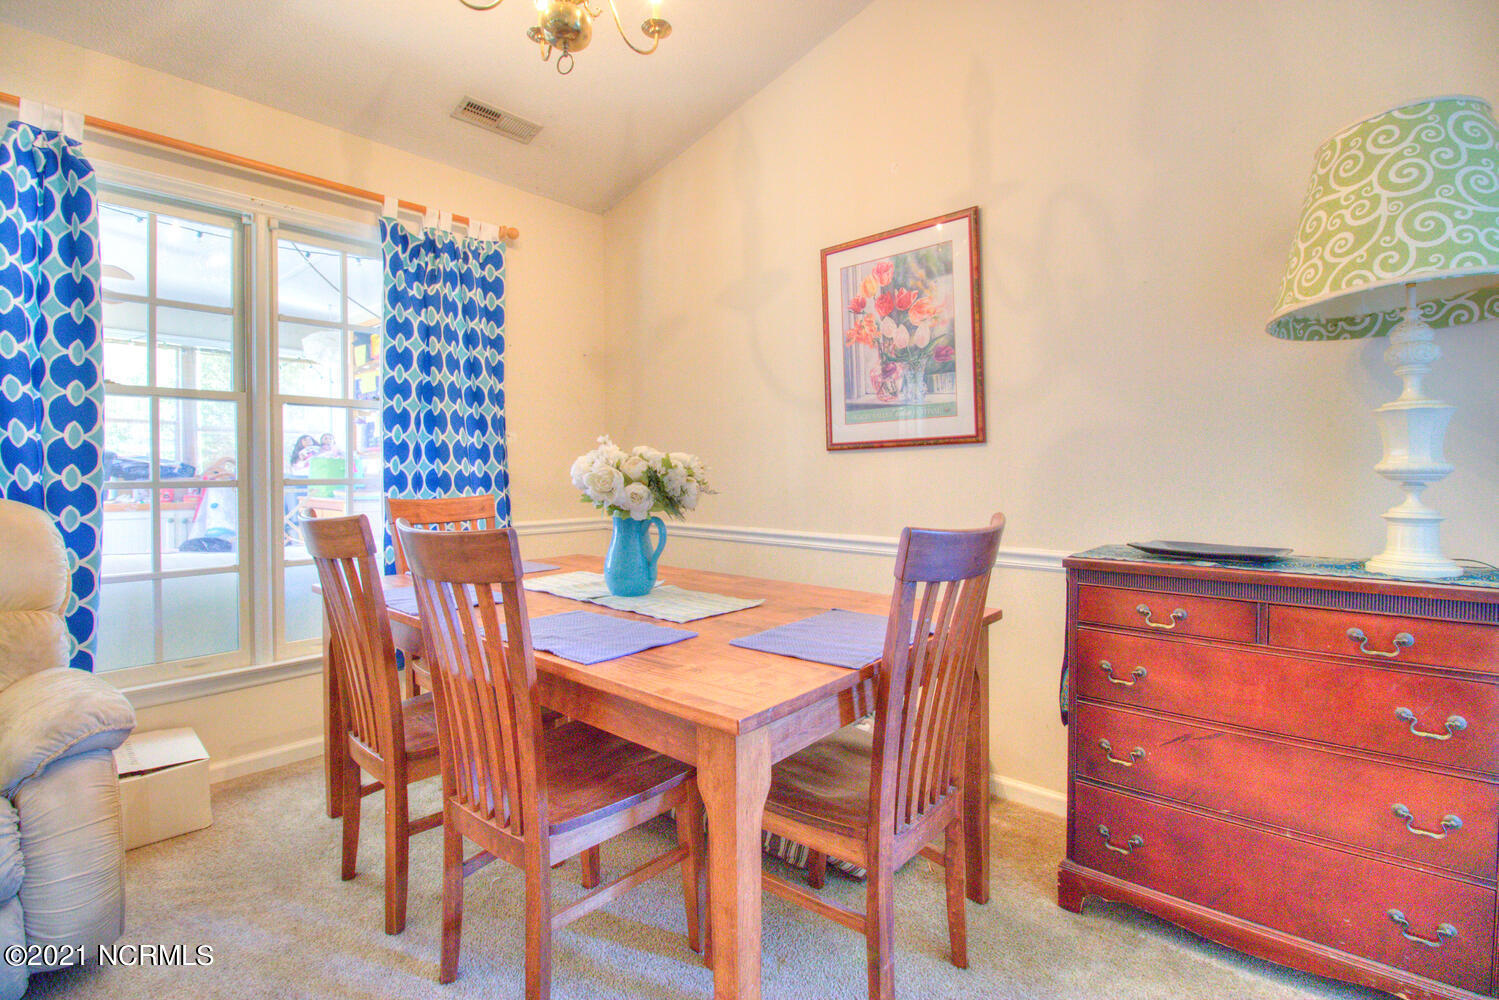 3524 Whispering Pines Court, Wilmington, North Carolina 28409, 3 Bedrooms Bedrooms, 5 Rooms Rooms,2 BathroomsBathrooms,Single family residence,For sale,Whispering Pines,100248553